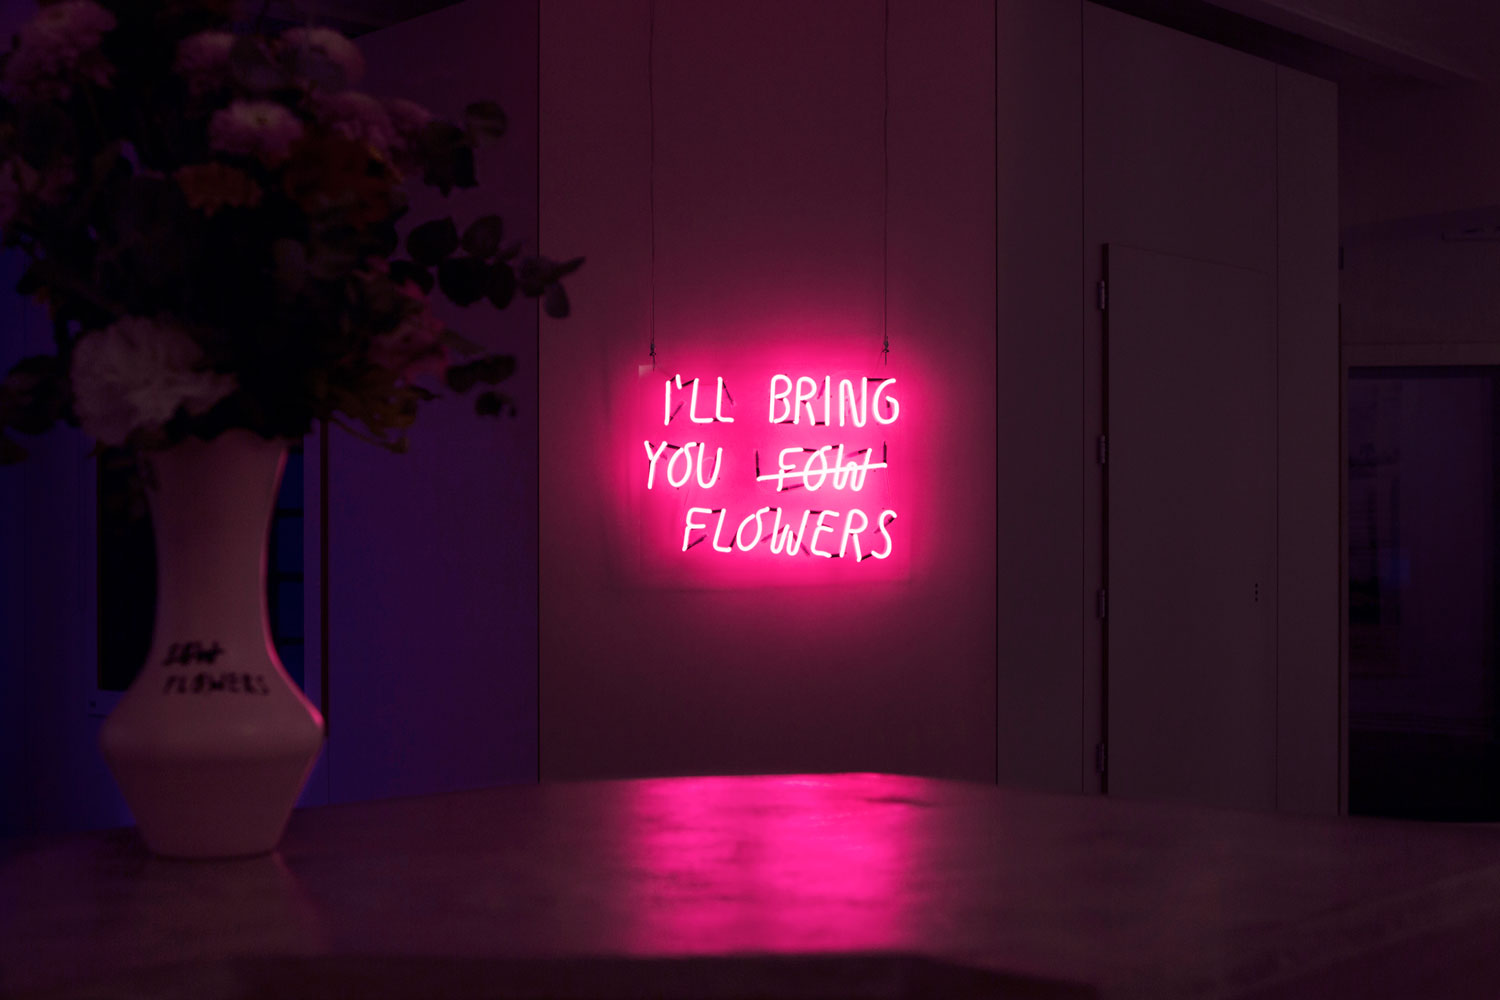 I'll Bring You Flowers Peter Phobia The Art Union